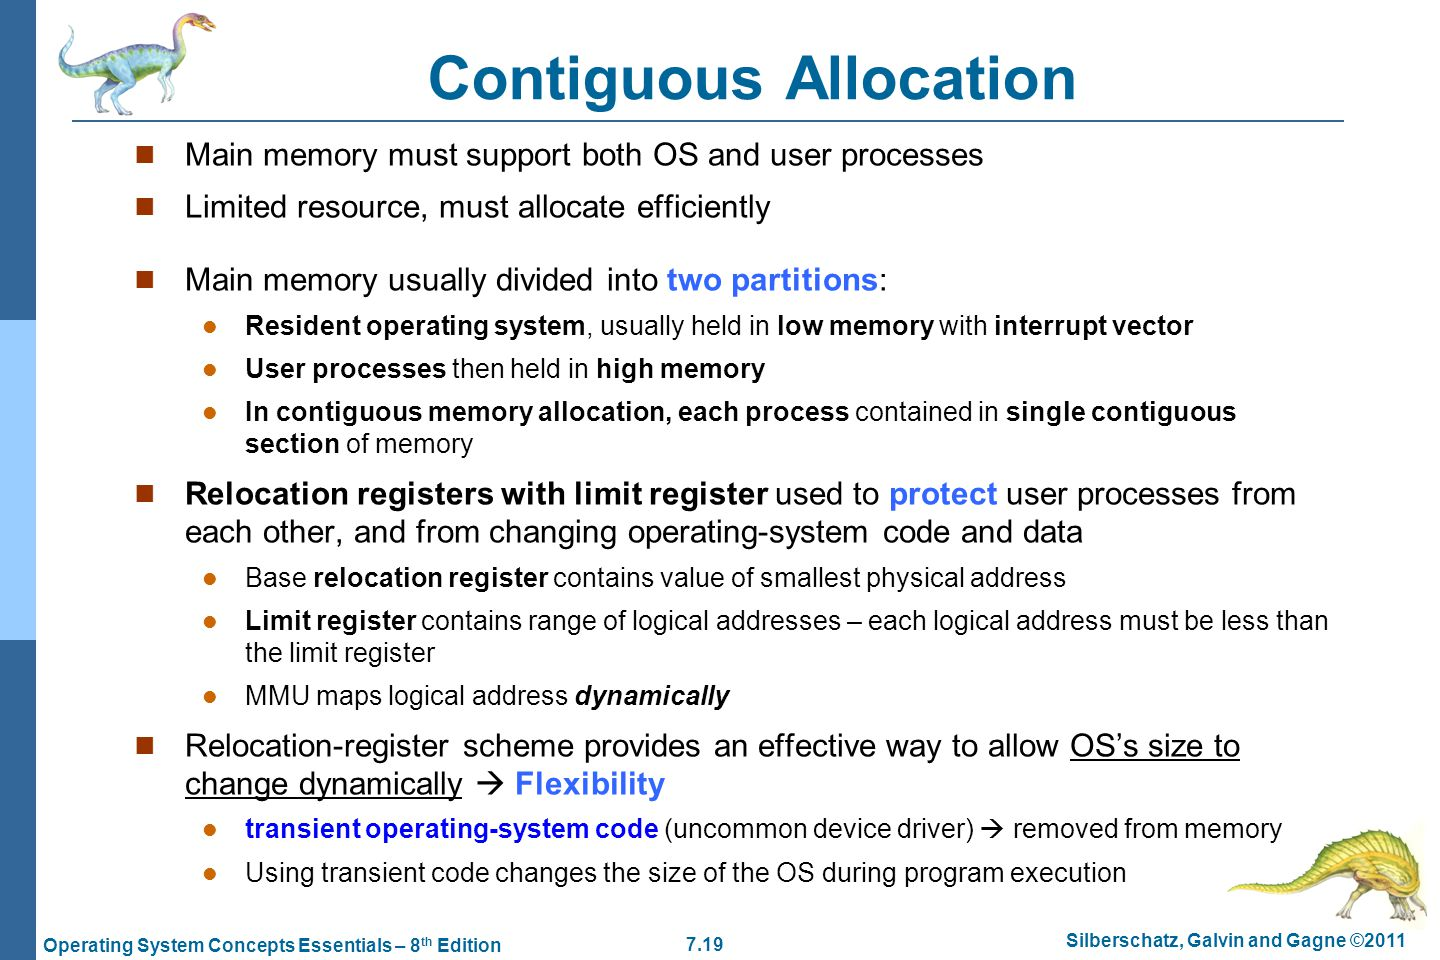 7.19 Silberschatz, Galvin and Gagne ©2011 Operating System Concepts Essentials – 8 th Edition Contiguous Allocation Main memory must support both OS and user processes Limited resource, must allocate efficiently Main memory usually divided into two partitions: Resident operating system, usually held in low memory with interrupt vector User processes then held in high memory In contiguous memory allocation, each process contained in single contiguous section of memory Relocation registers with limit register used to protect user processes from each other, and from changing operating-system code and data Base relocation register contains value of smallest physical address Limit register contains range of logical addresses – each logical address must be less than the limit register MMU maps logical address dynamically Relocation-register scheme provides an effective way to allow OS's size to change dynamically  Flexibility transient operating-system code (uncommon device driver)  removed from memory Using transient code changes the size of the OS during program execution